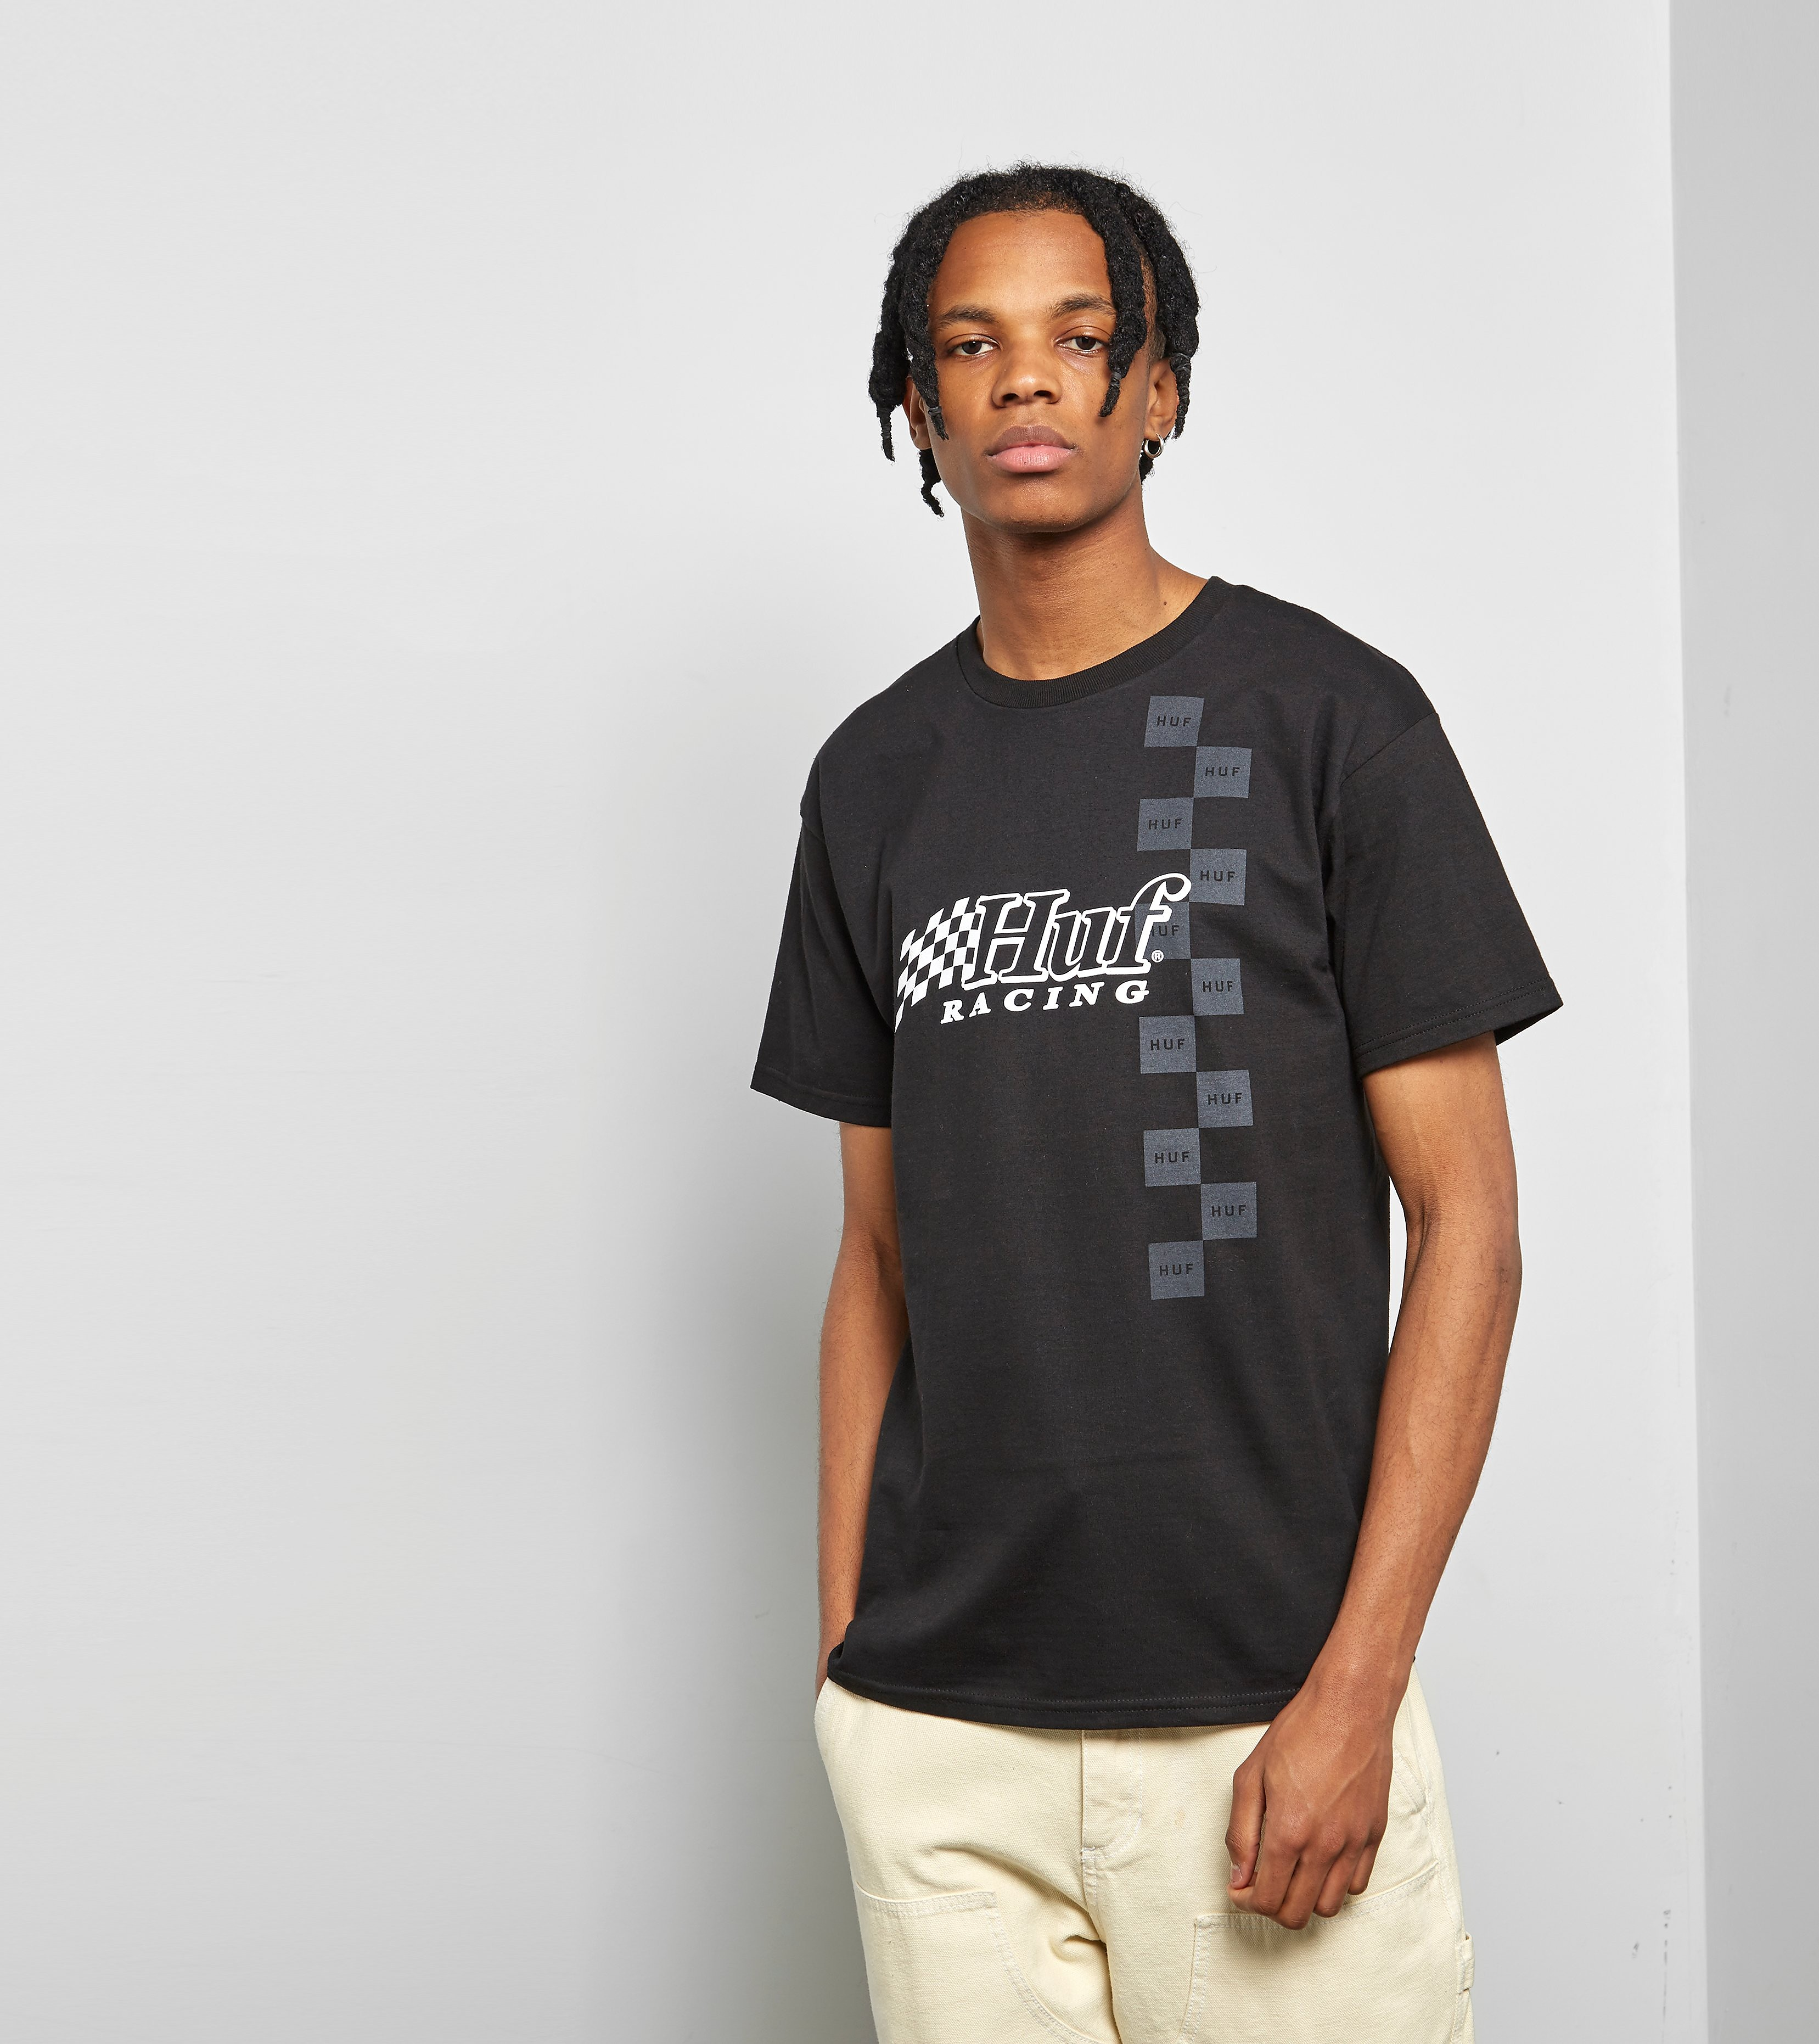 HUF T-Shirt Blackout Racing